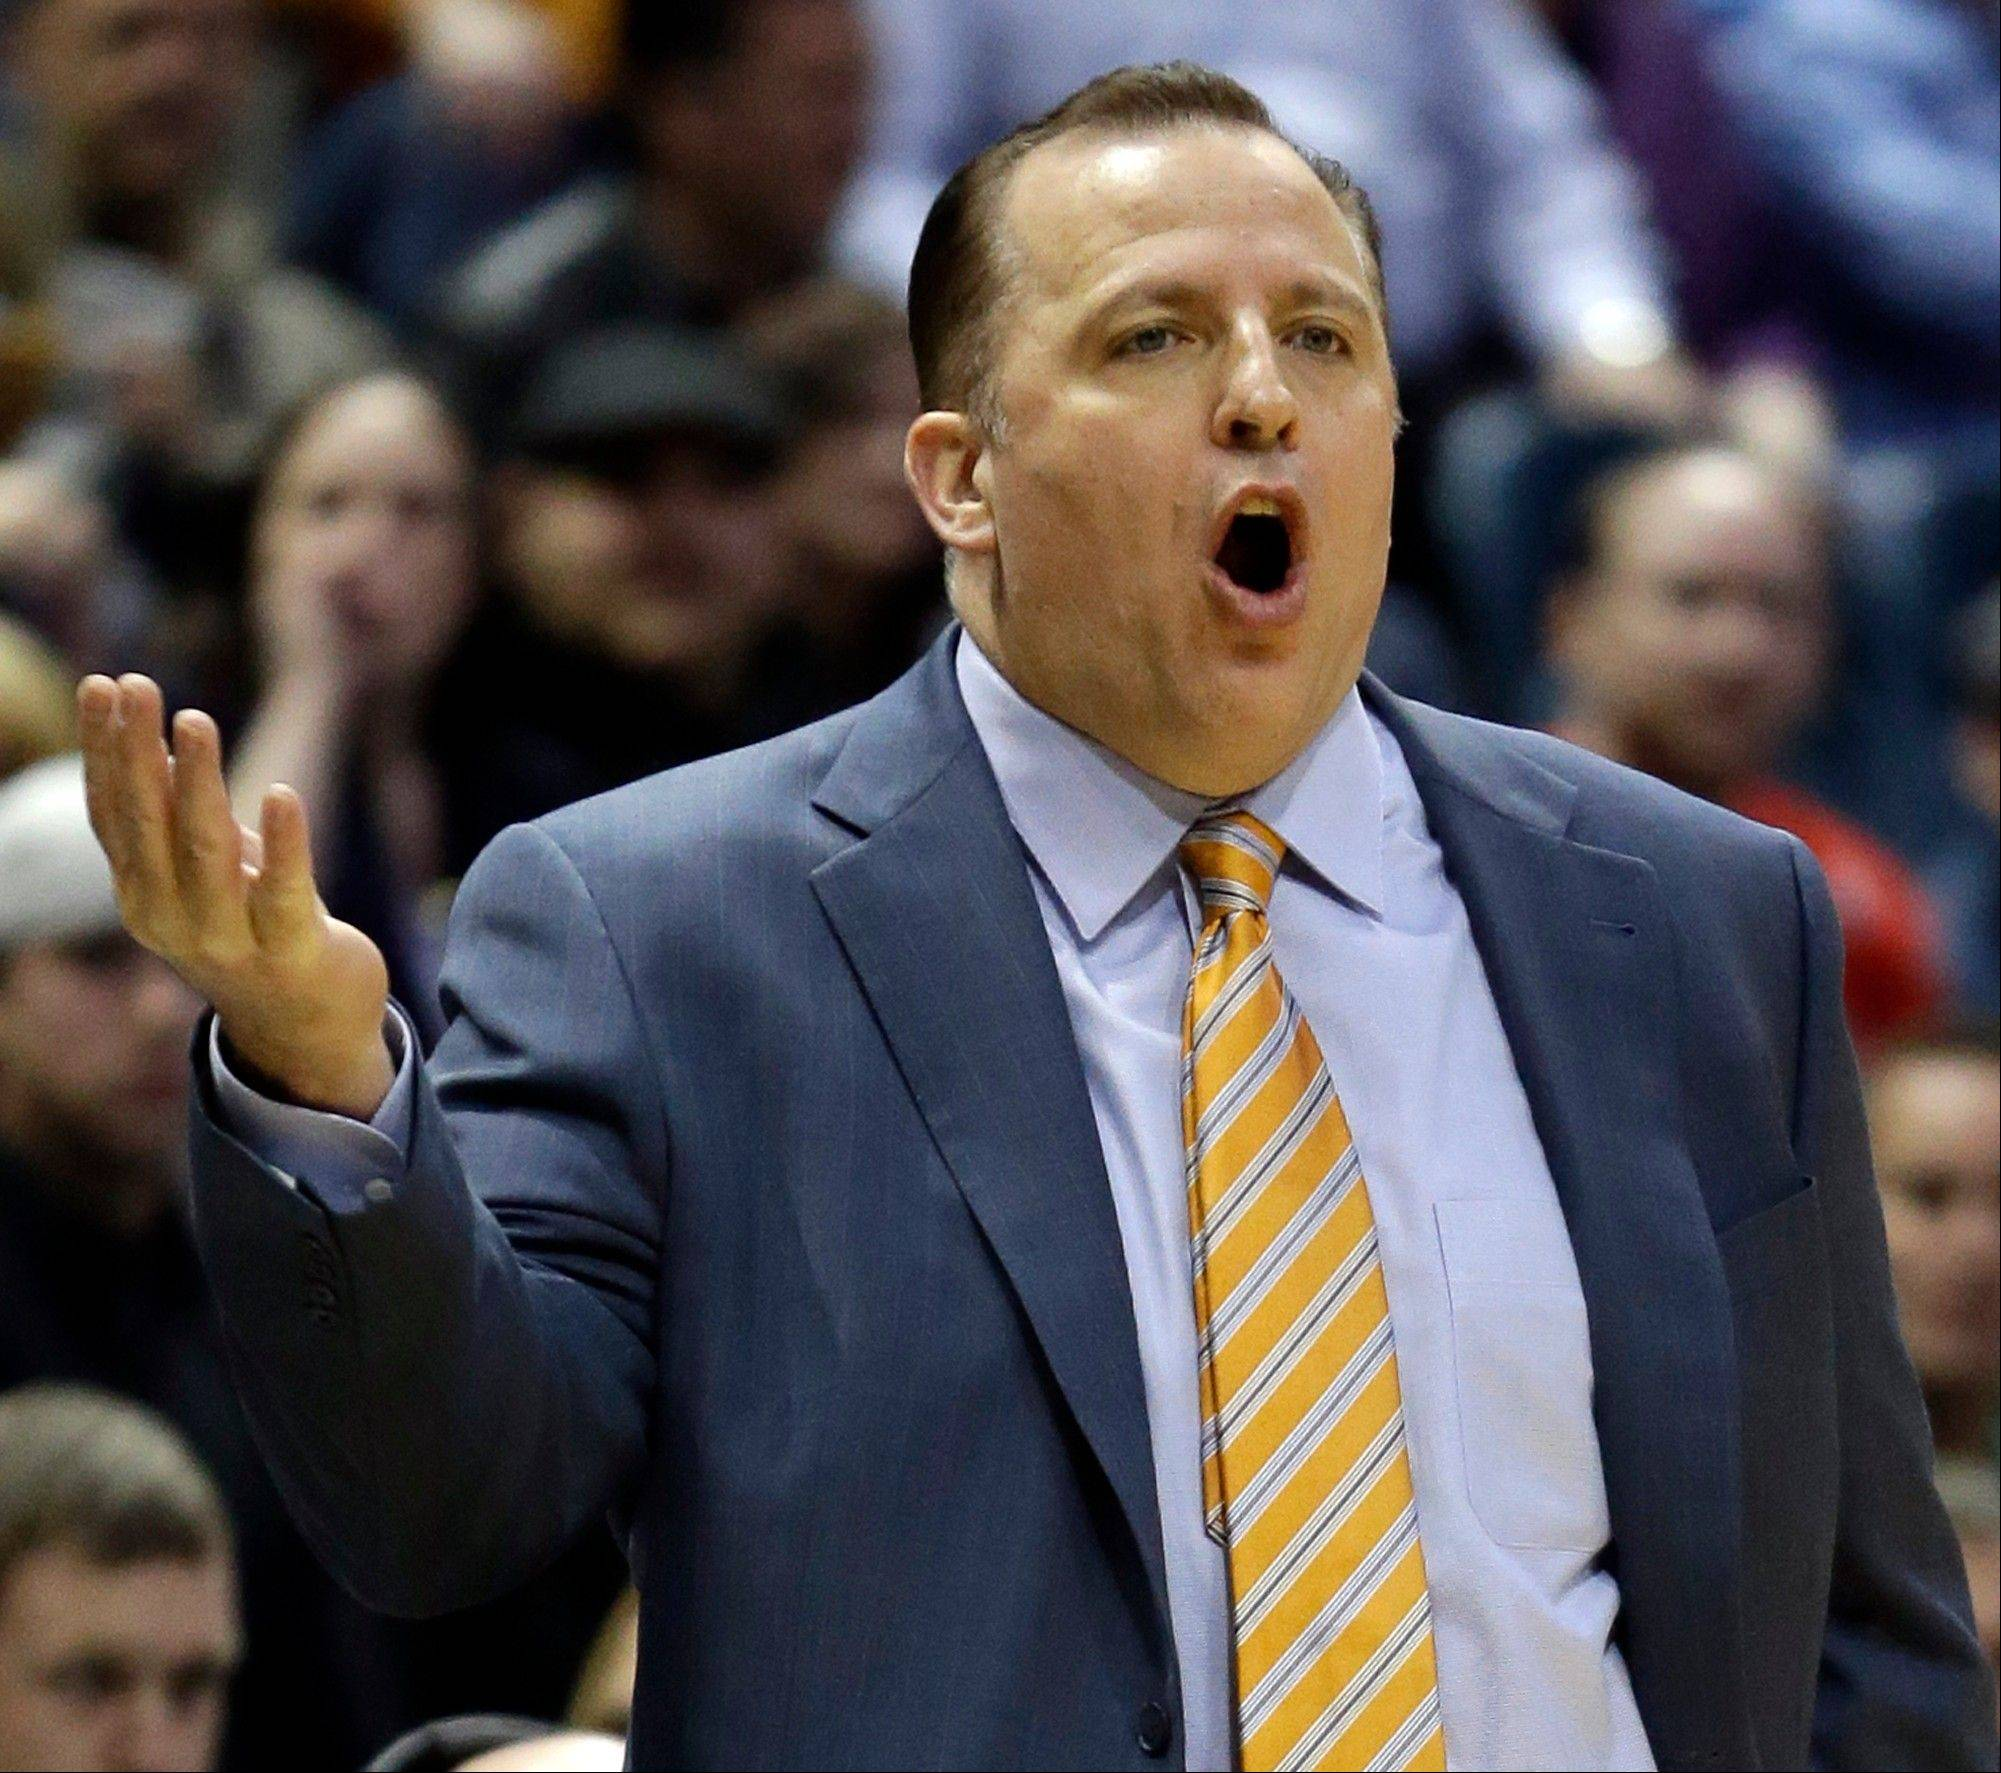 Bulls coach Tom Thibodeau seems to have been delivering a message to his bosses by not playing his reserves late in Monday night's loss to the Bucks.